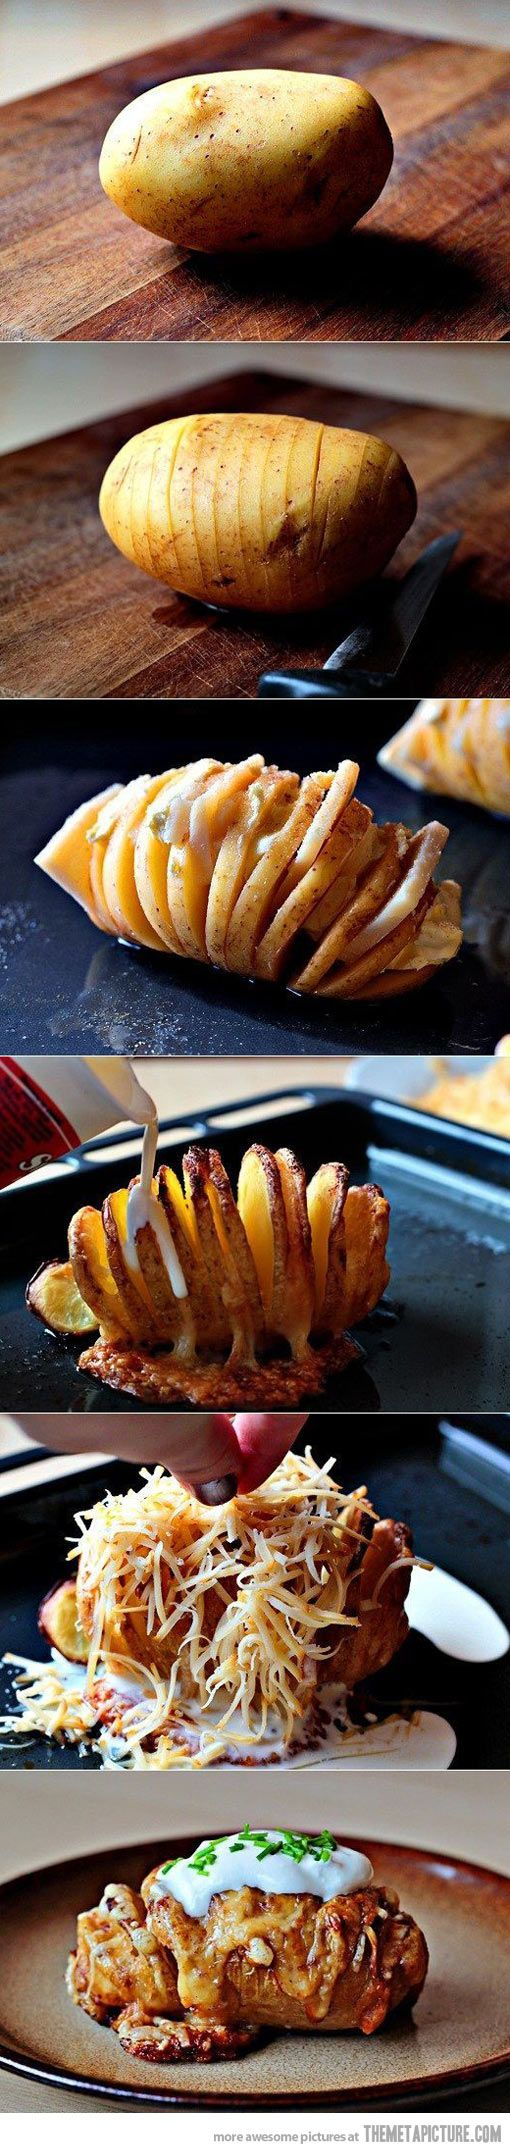 cool-tasty-cheese-potato-crispy